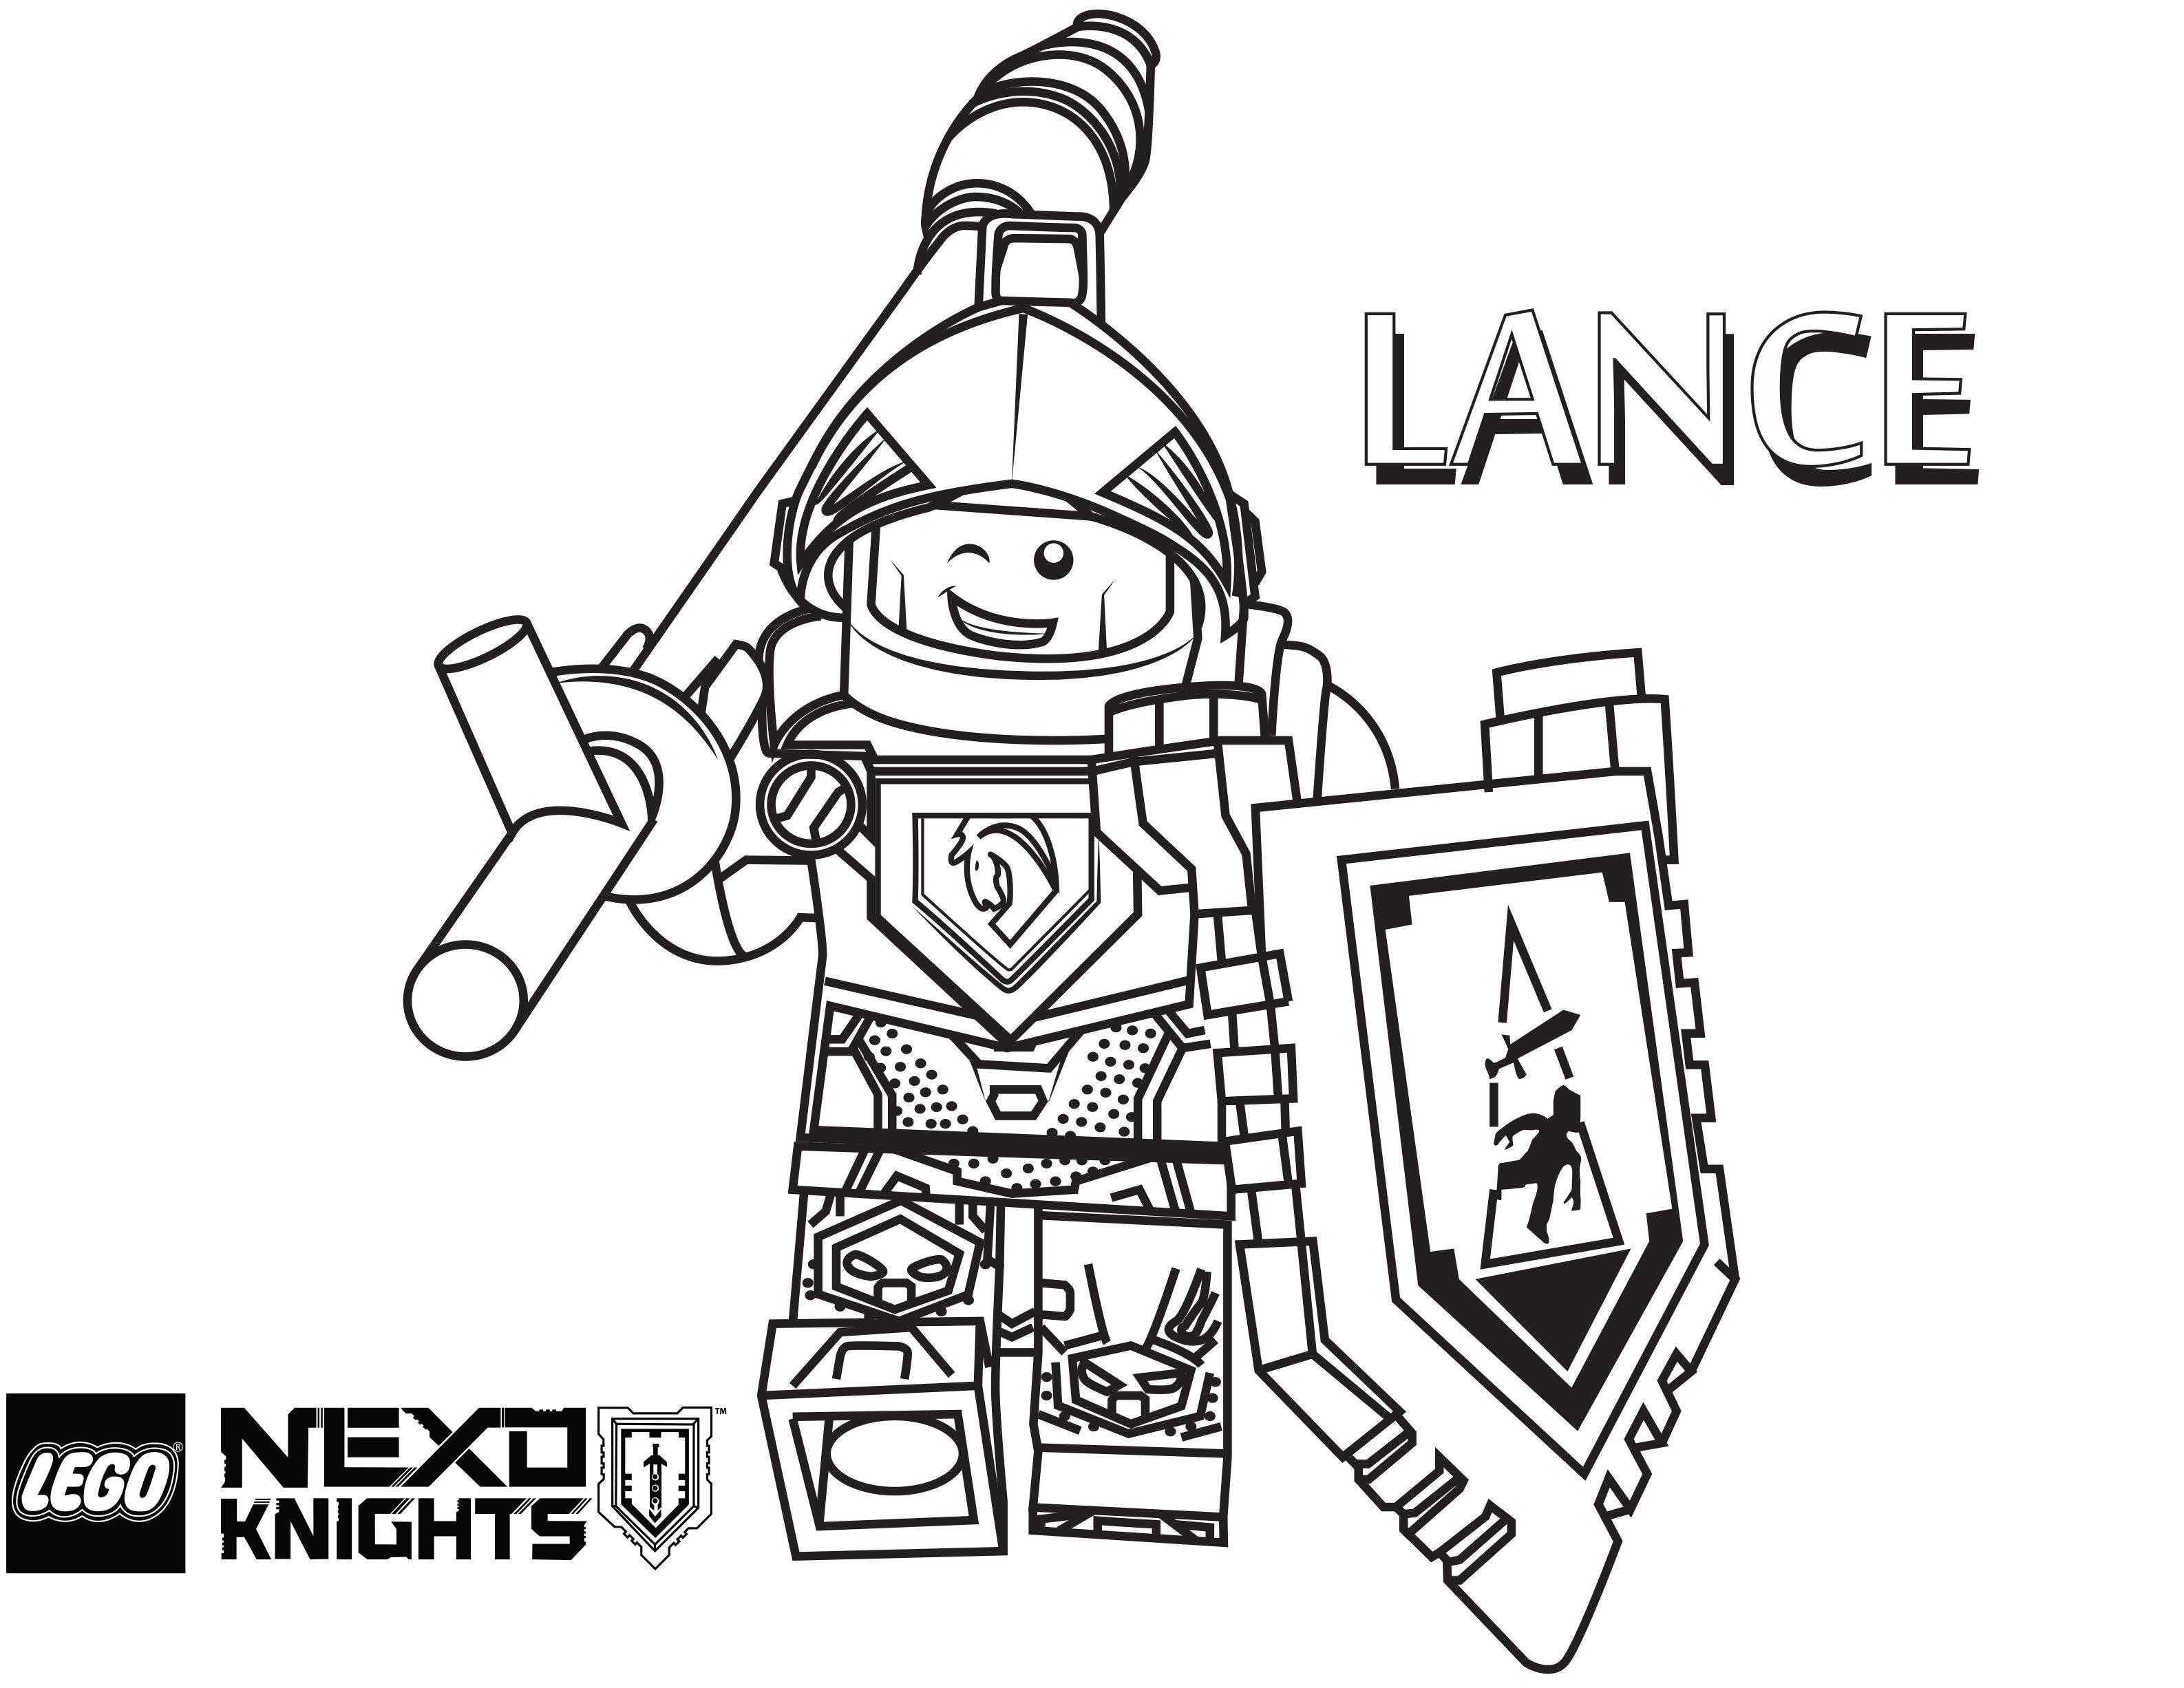 Lego Nexo Knights Coloring Page Lego Lance Printable Color Sheet